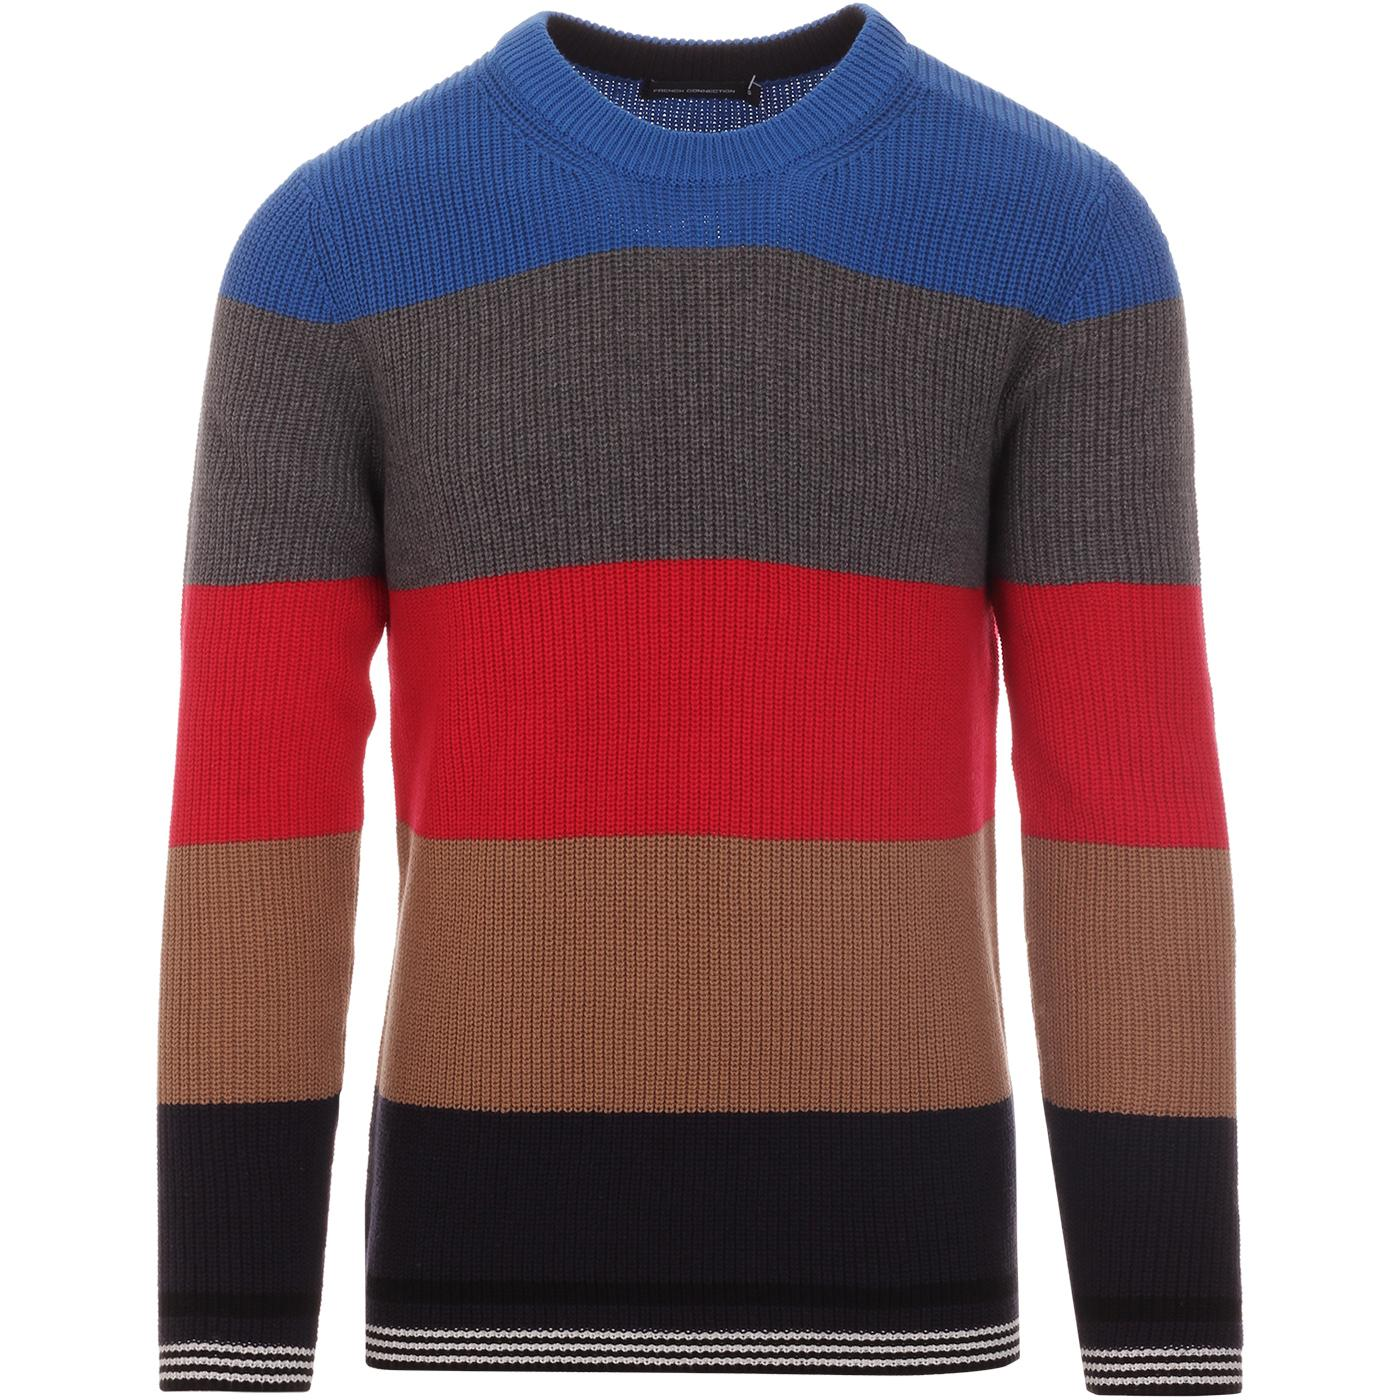 FRENCH CONNECTION Retro Indie Block Stripe Jumper